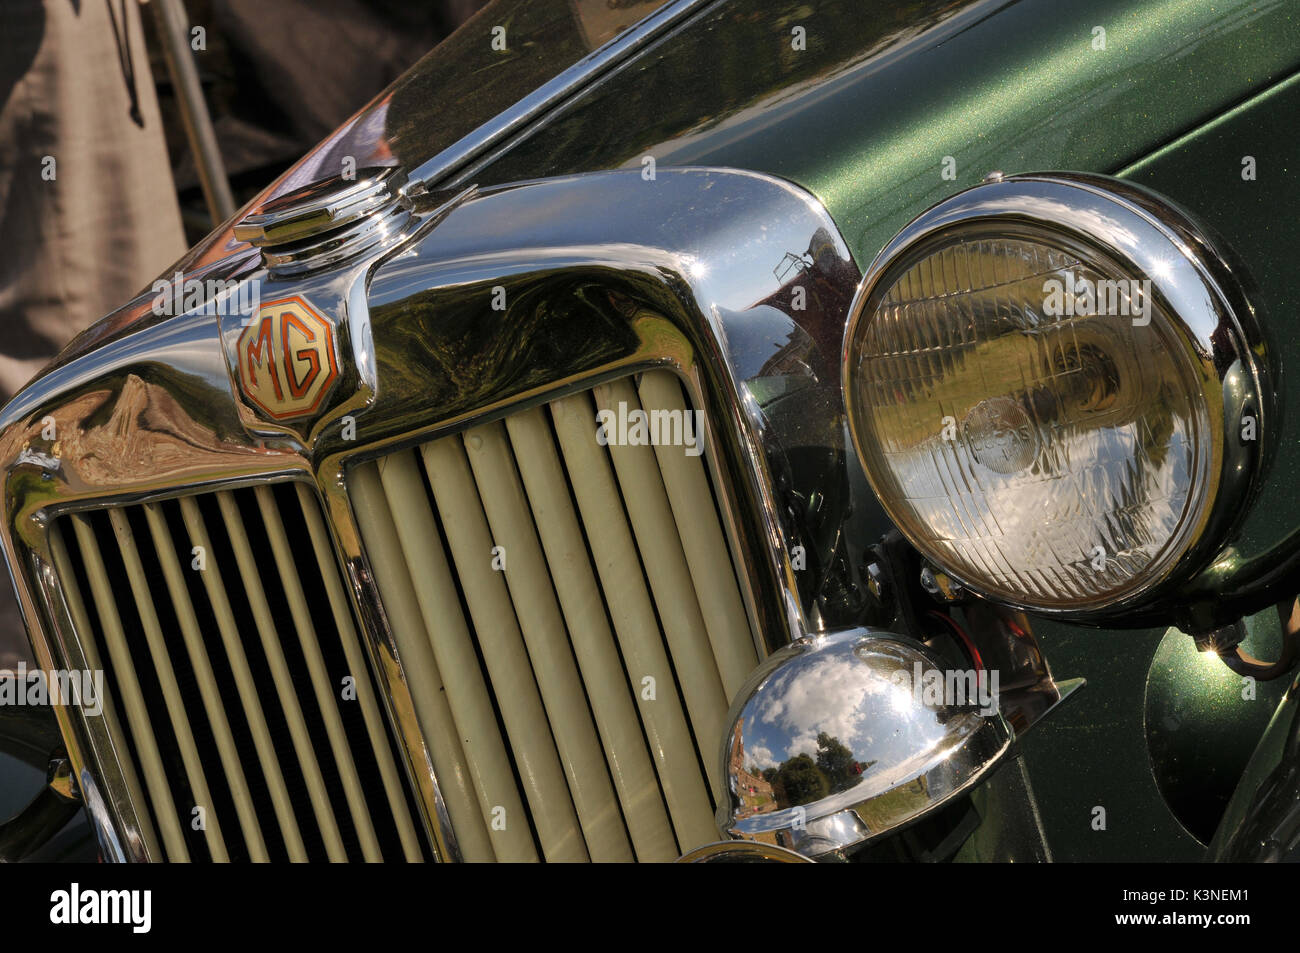 Classic Rolls Royce Austin Mg Cars At A Show All In Concourse Stock - Show all cars